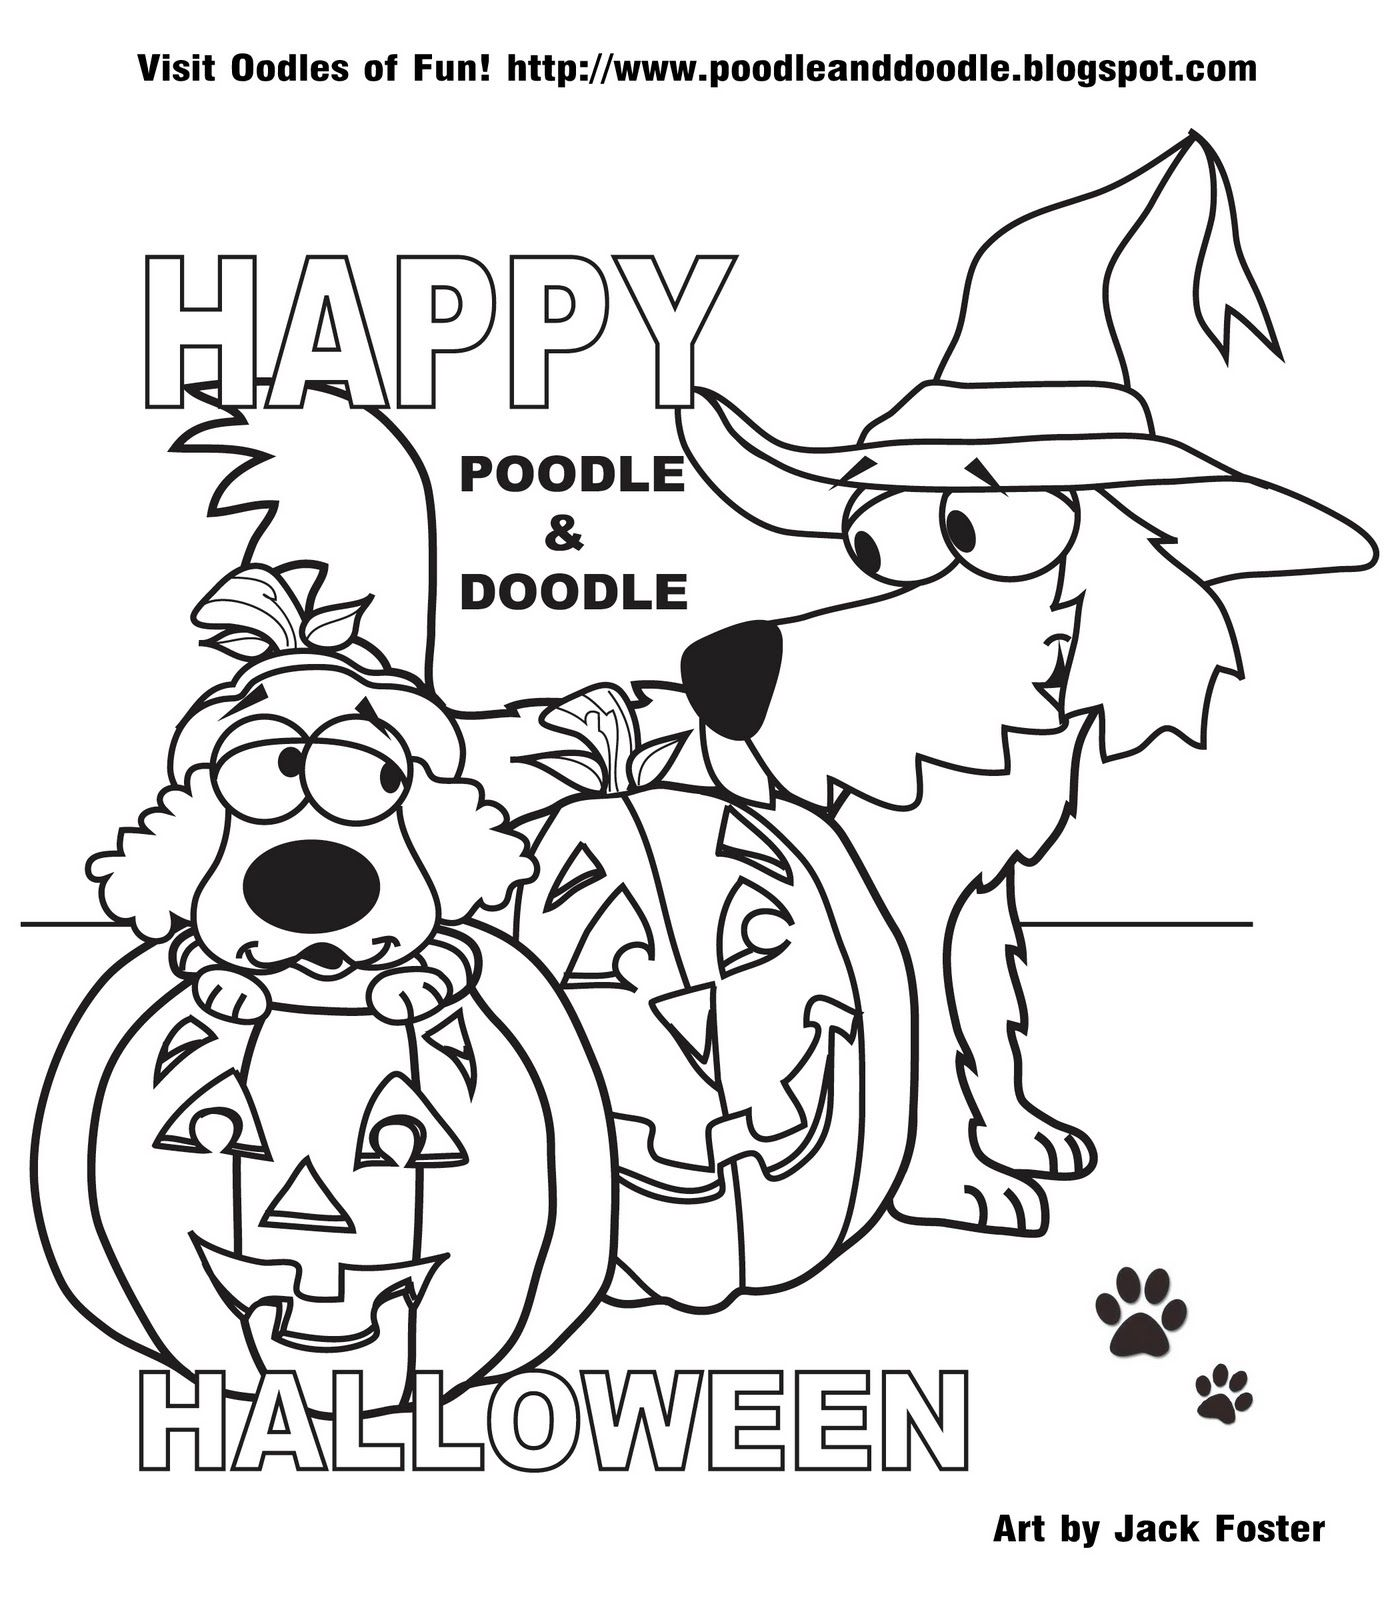 Poodle and Doodle say, \